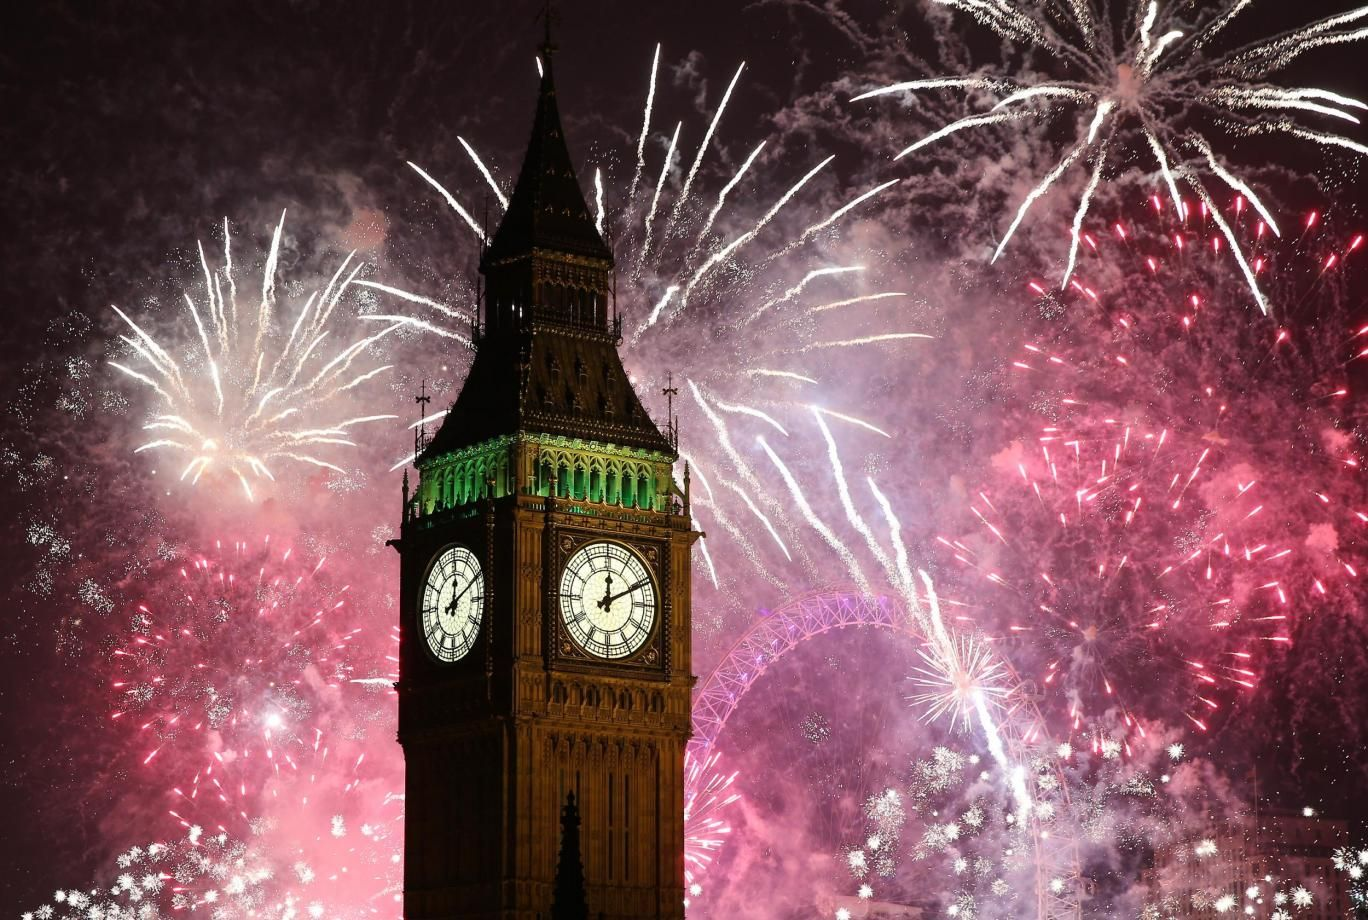 Aud Lang Syne Happy New Year Content In A Cottage Celebration Around The World New Year S Eve In London Newyear